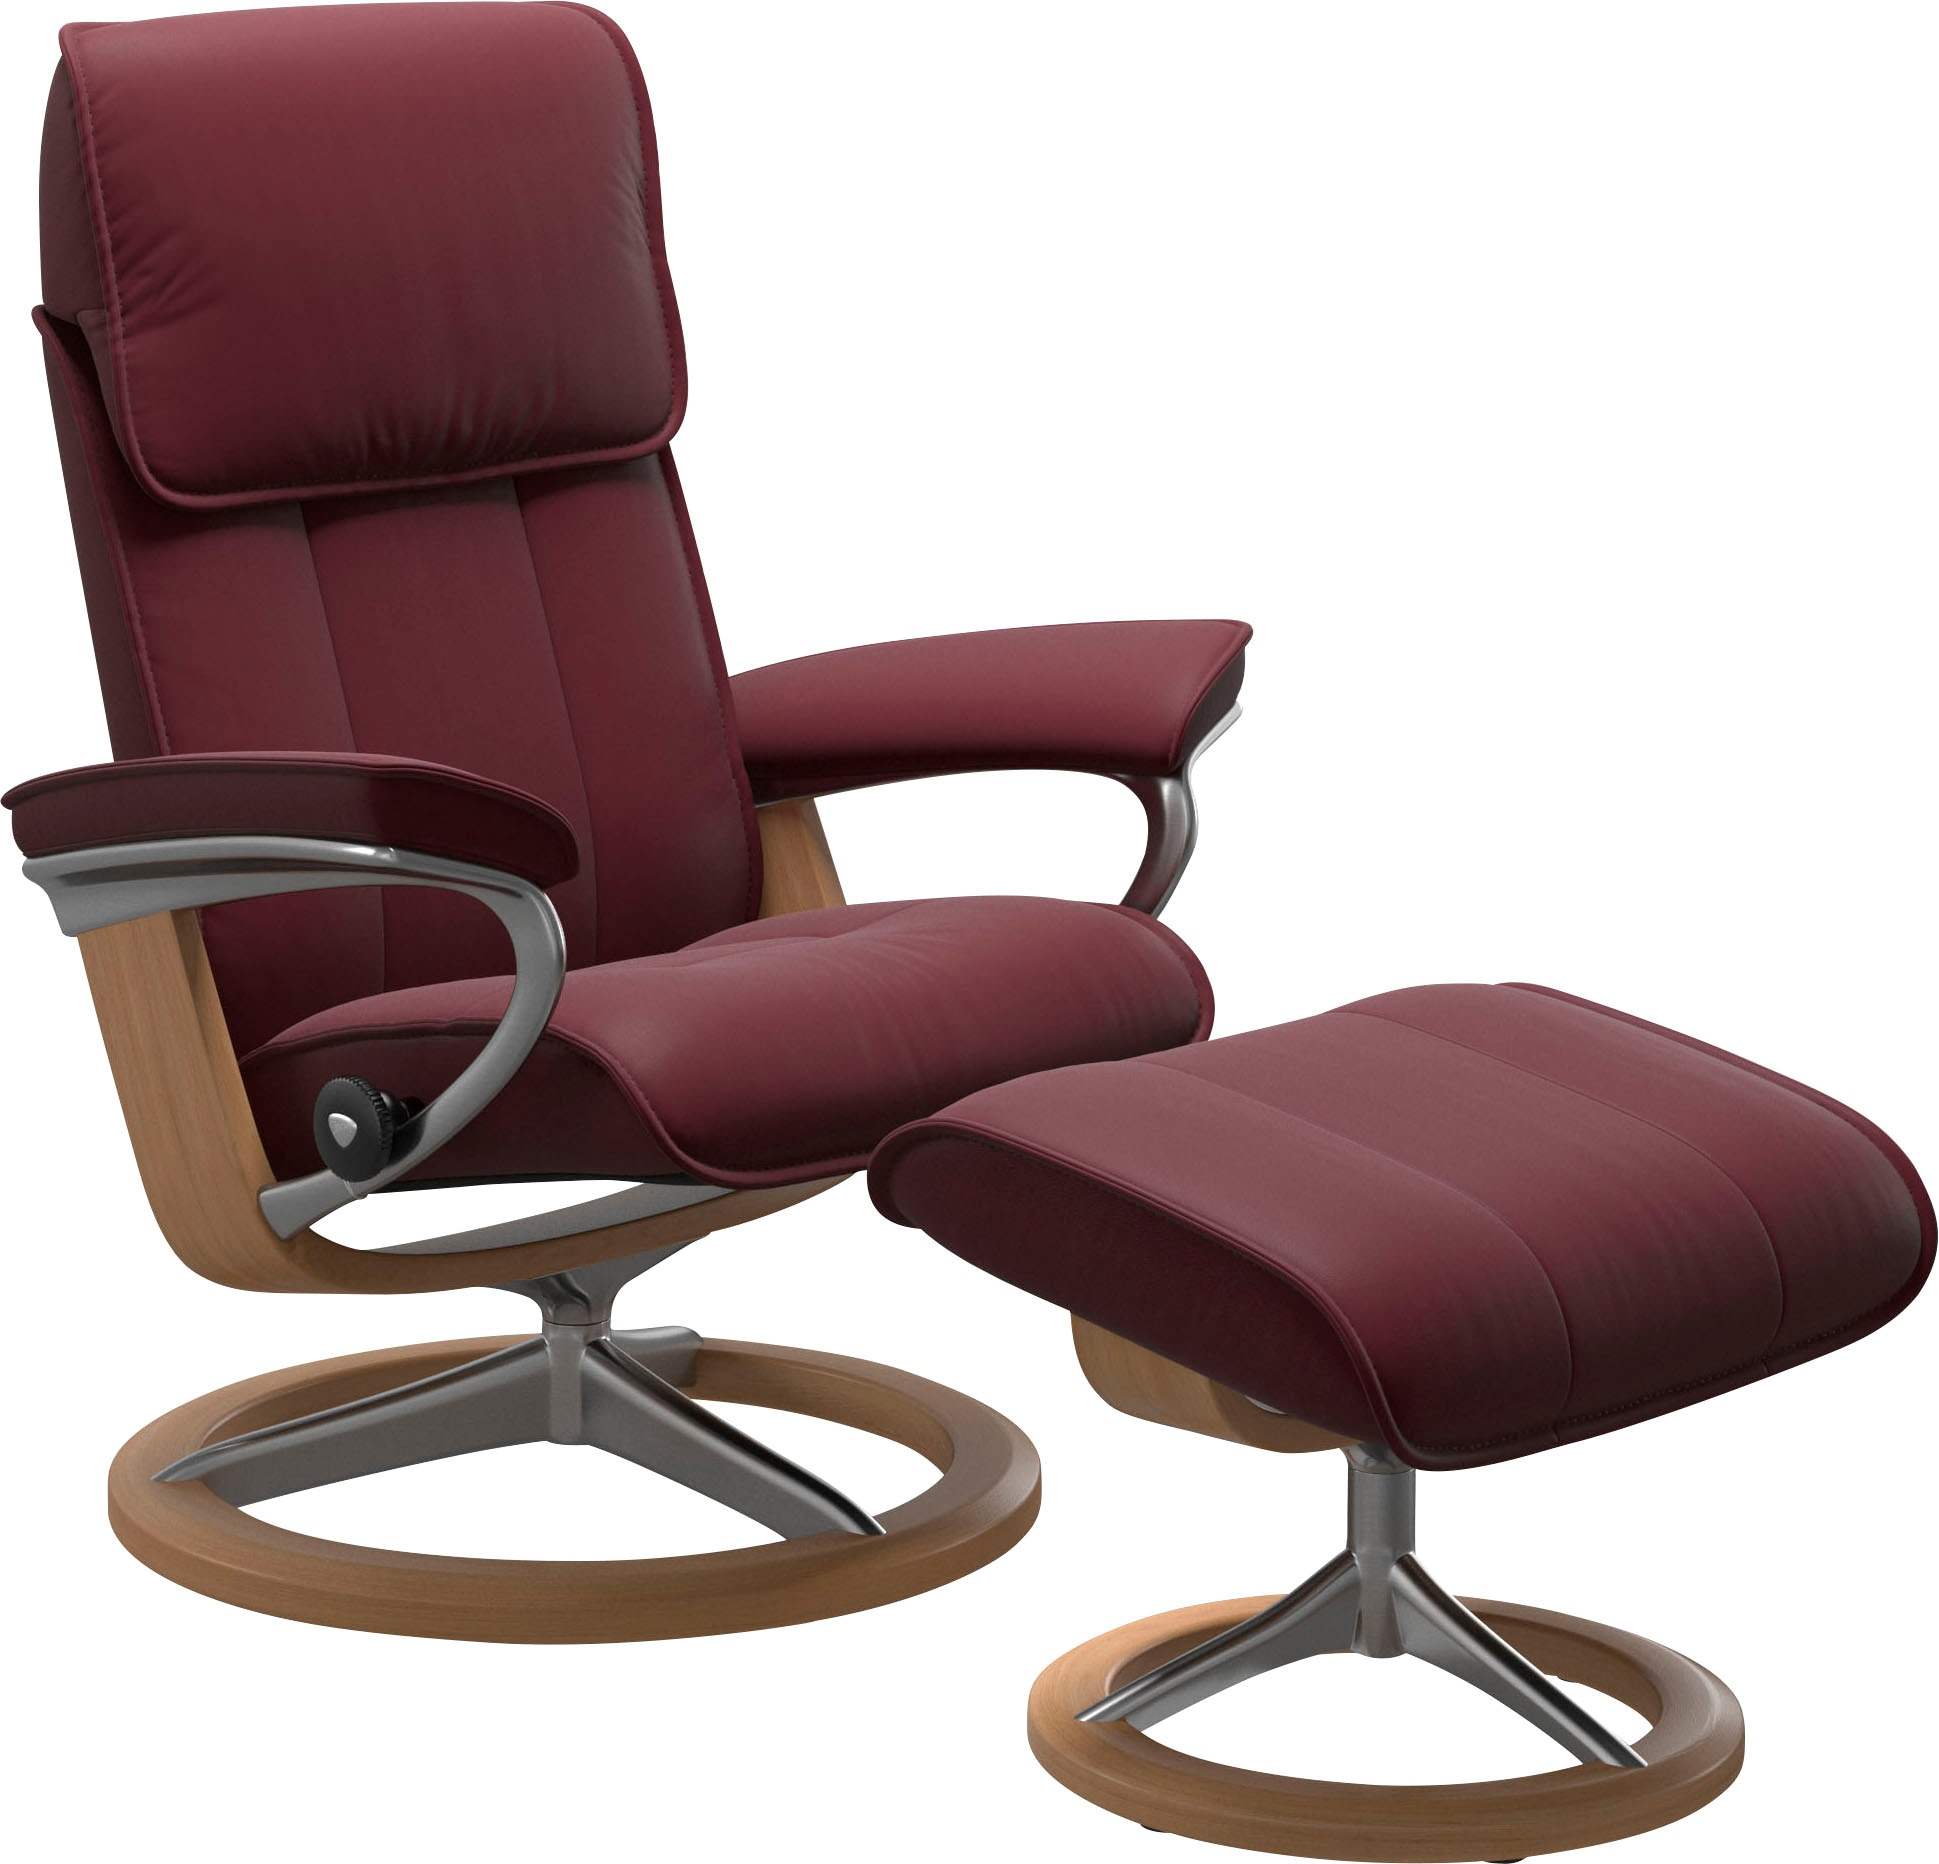 Stressless Relaxsessel Admiral Set Relaxsessel Mit Hocker Online Bei Otto